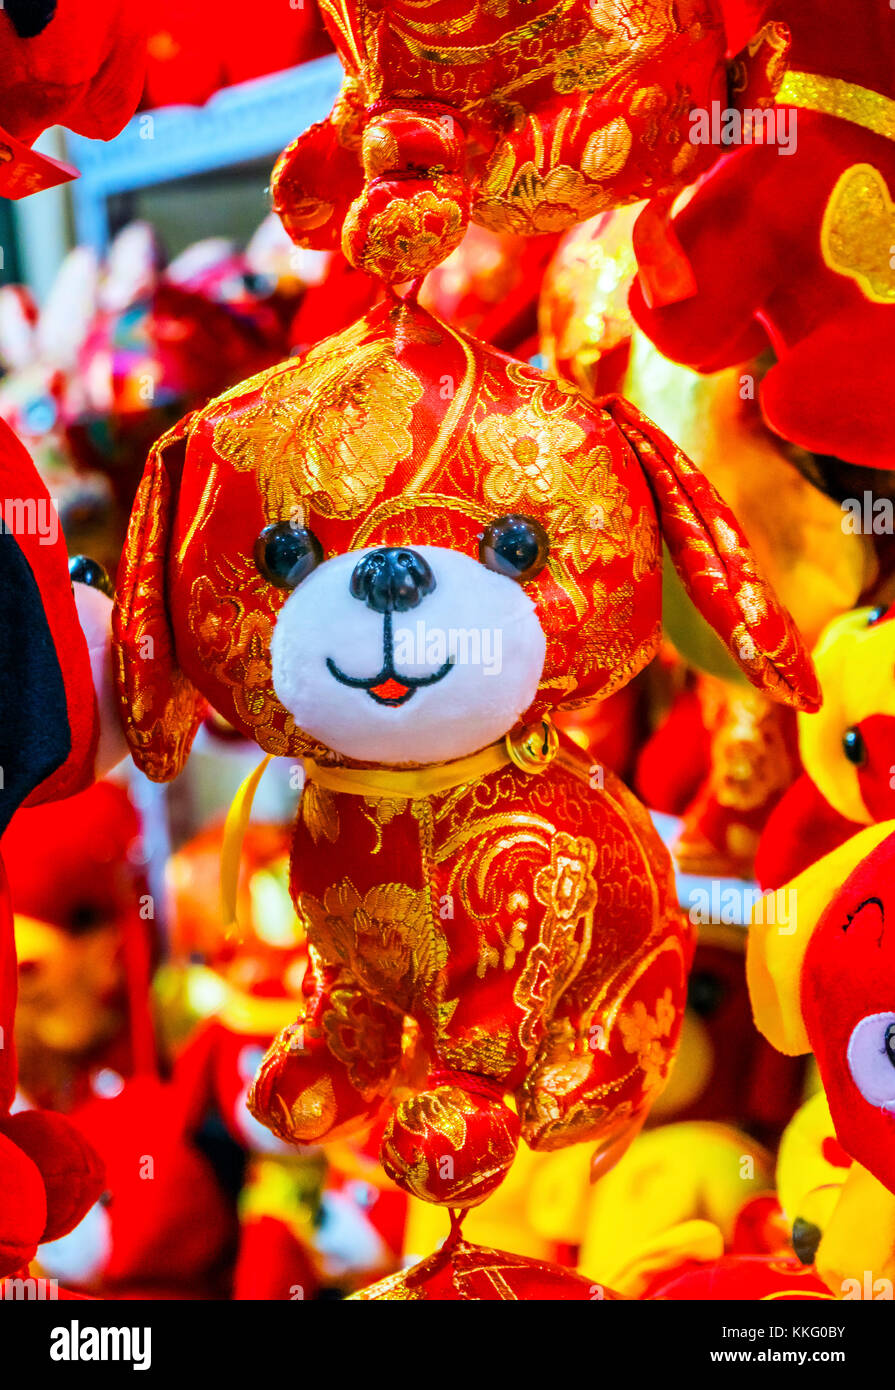 red ancient dogs chinese lunar new year decorations beijing china 2018 year of the dog in chinese lunar new year decorations - Chinese Lunar New Year